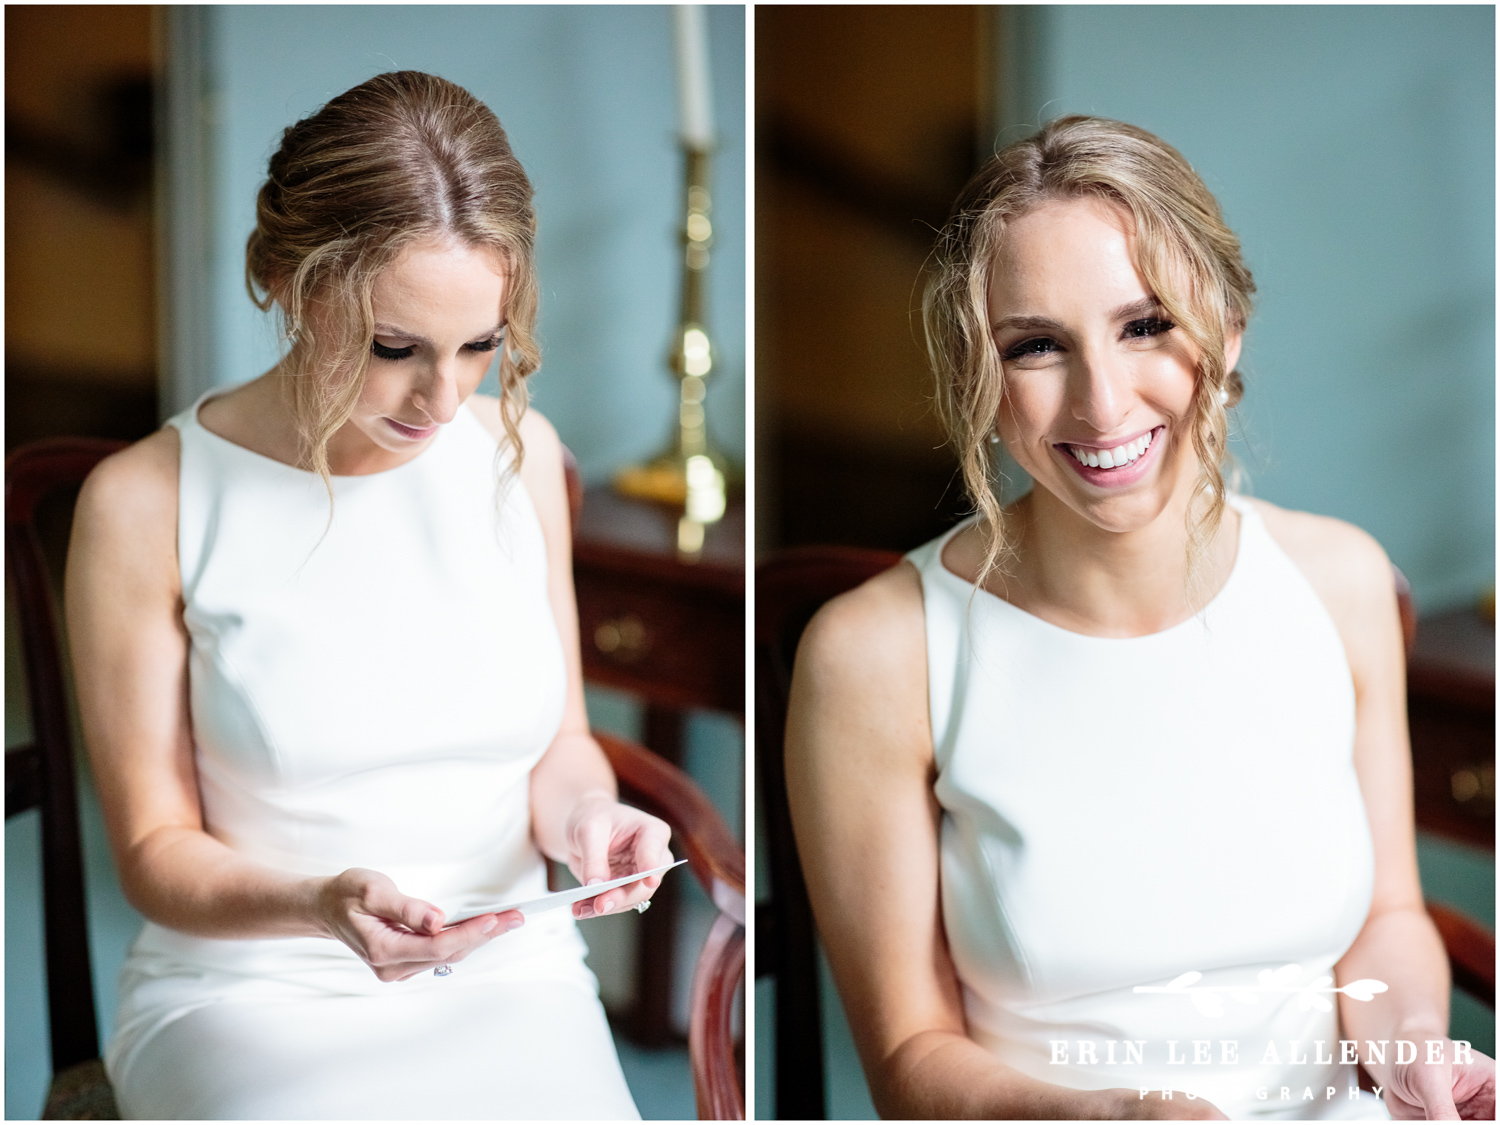 Bride_Reads_Letter_From_Groom